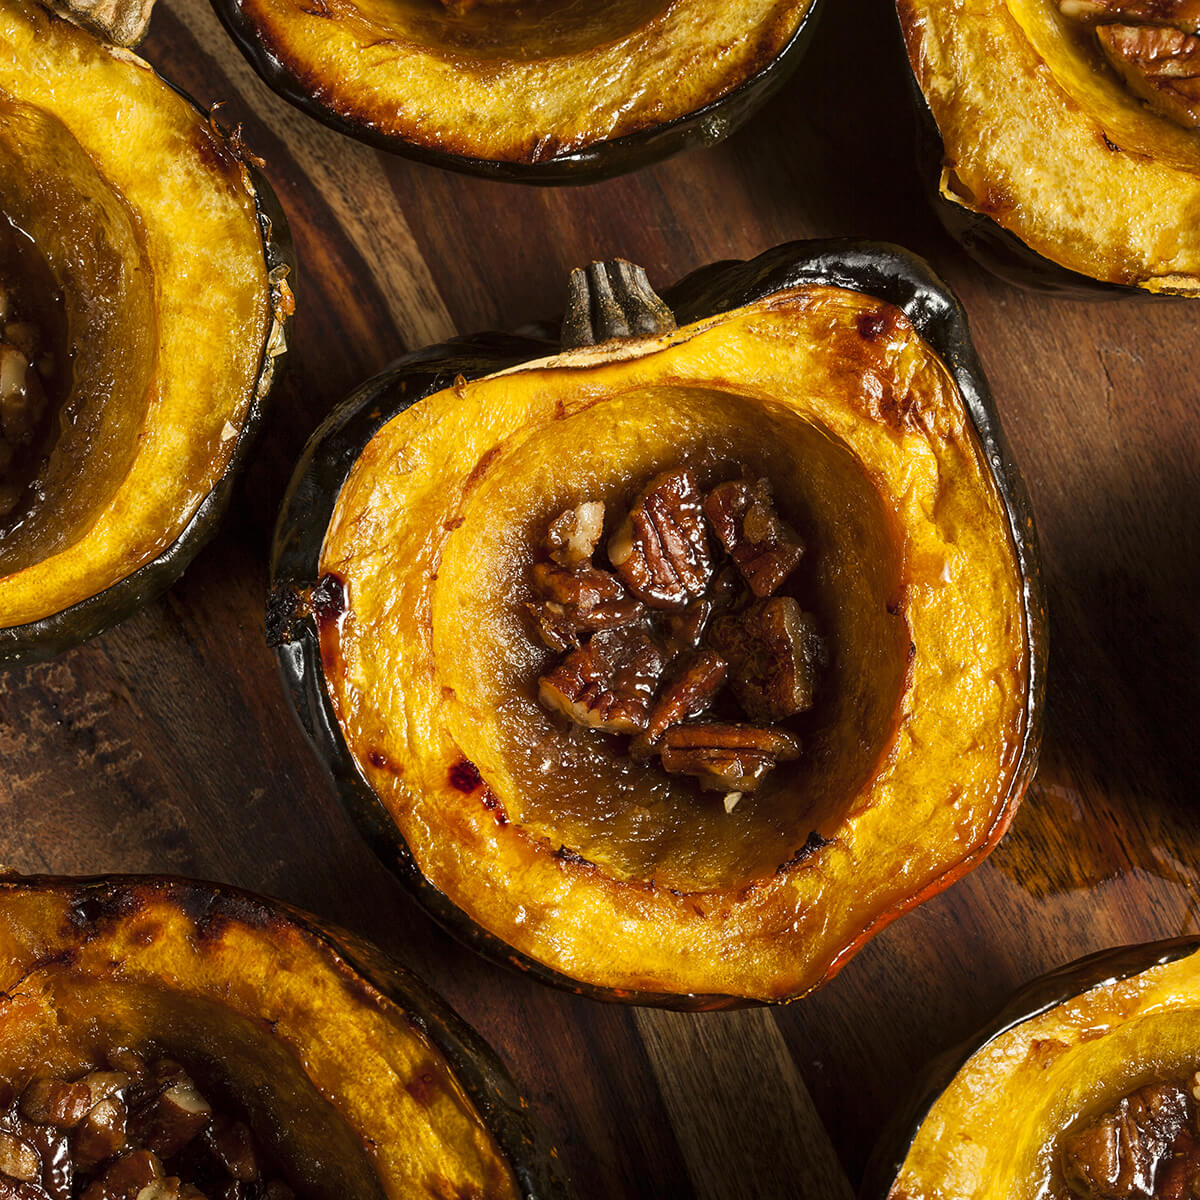 roasted acorn squash is one of the 21 Best Vegan Christmas Dinner Recipes